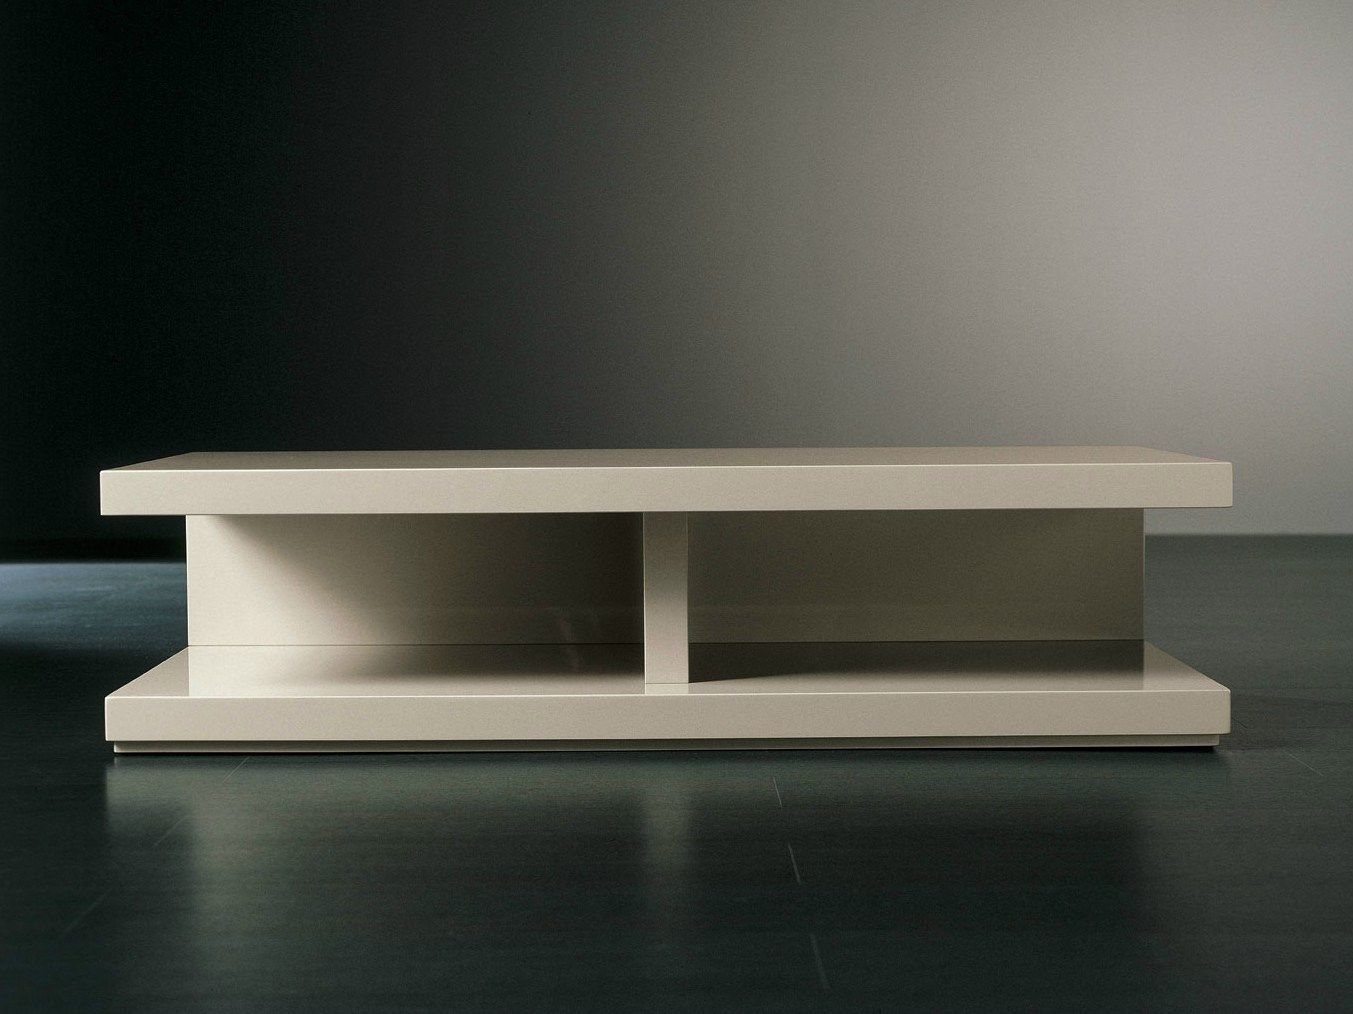 CLUNY TV cabinet by Meridiani | HH House | Pinterest | House